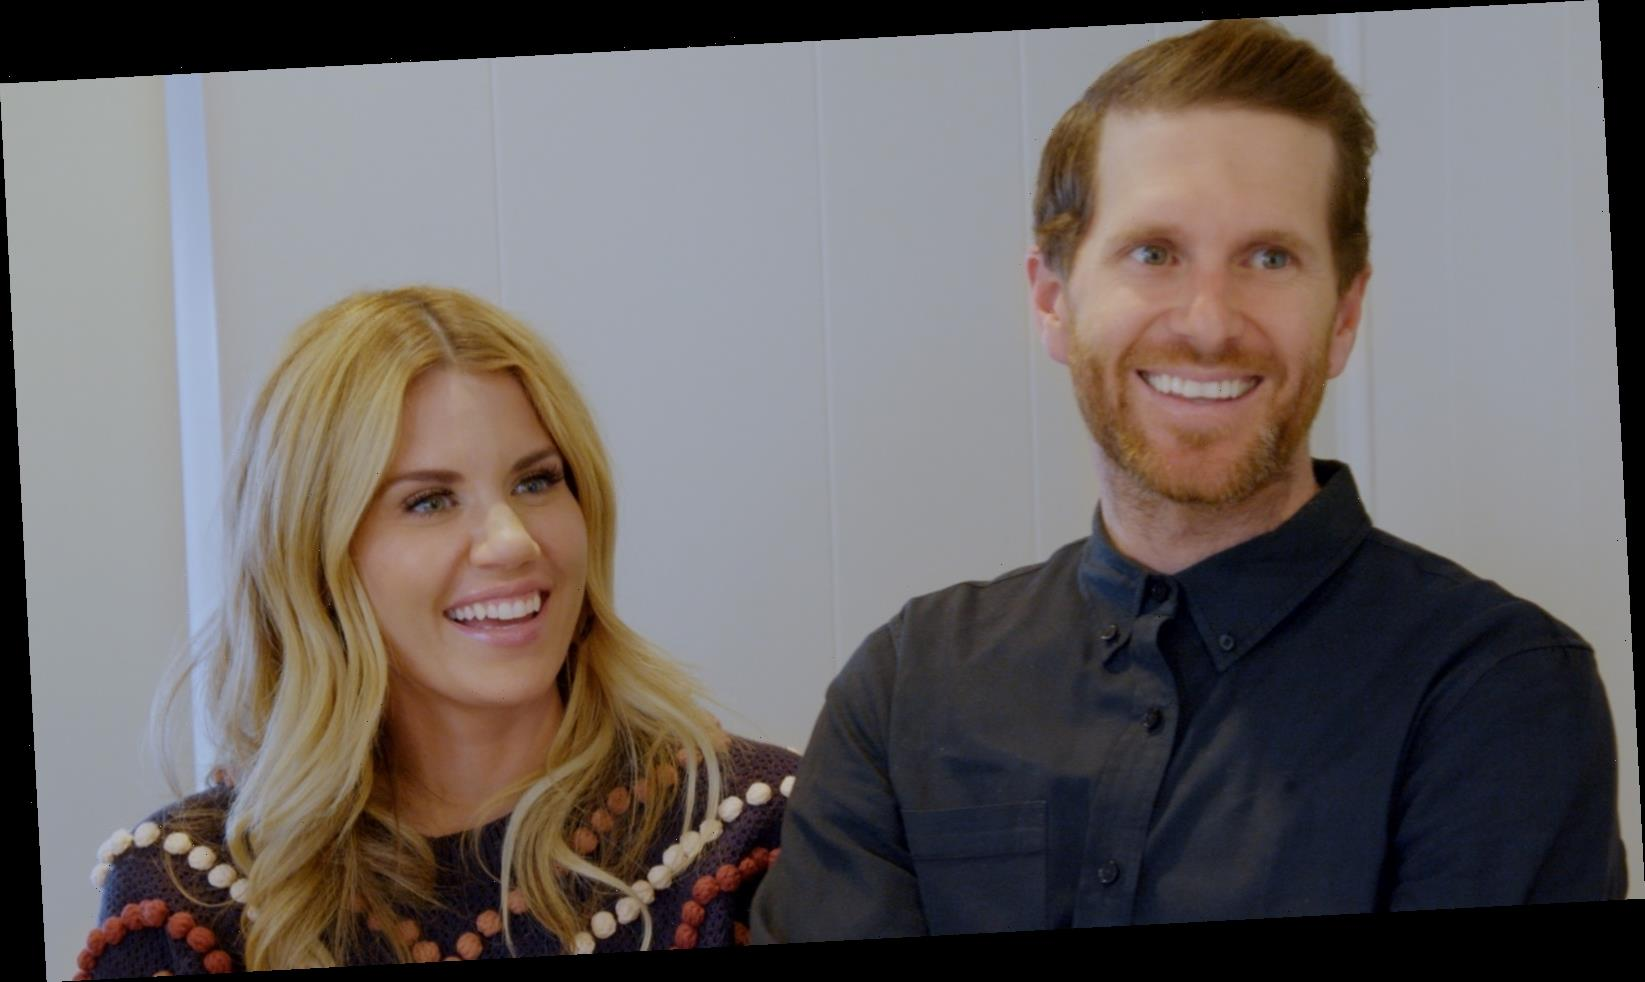 Dream Home Makeover stars Shea and Syd share their favorite reveals